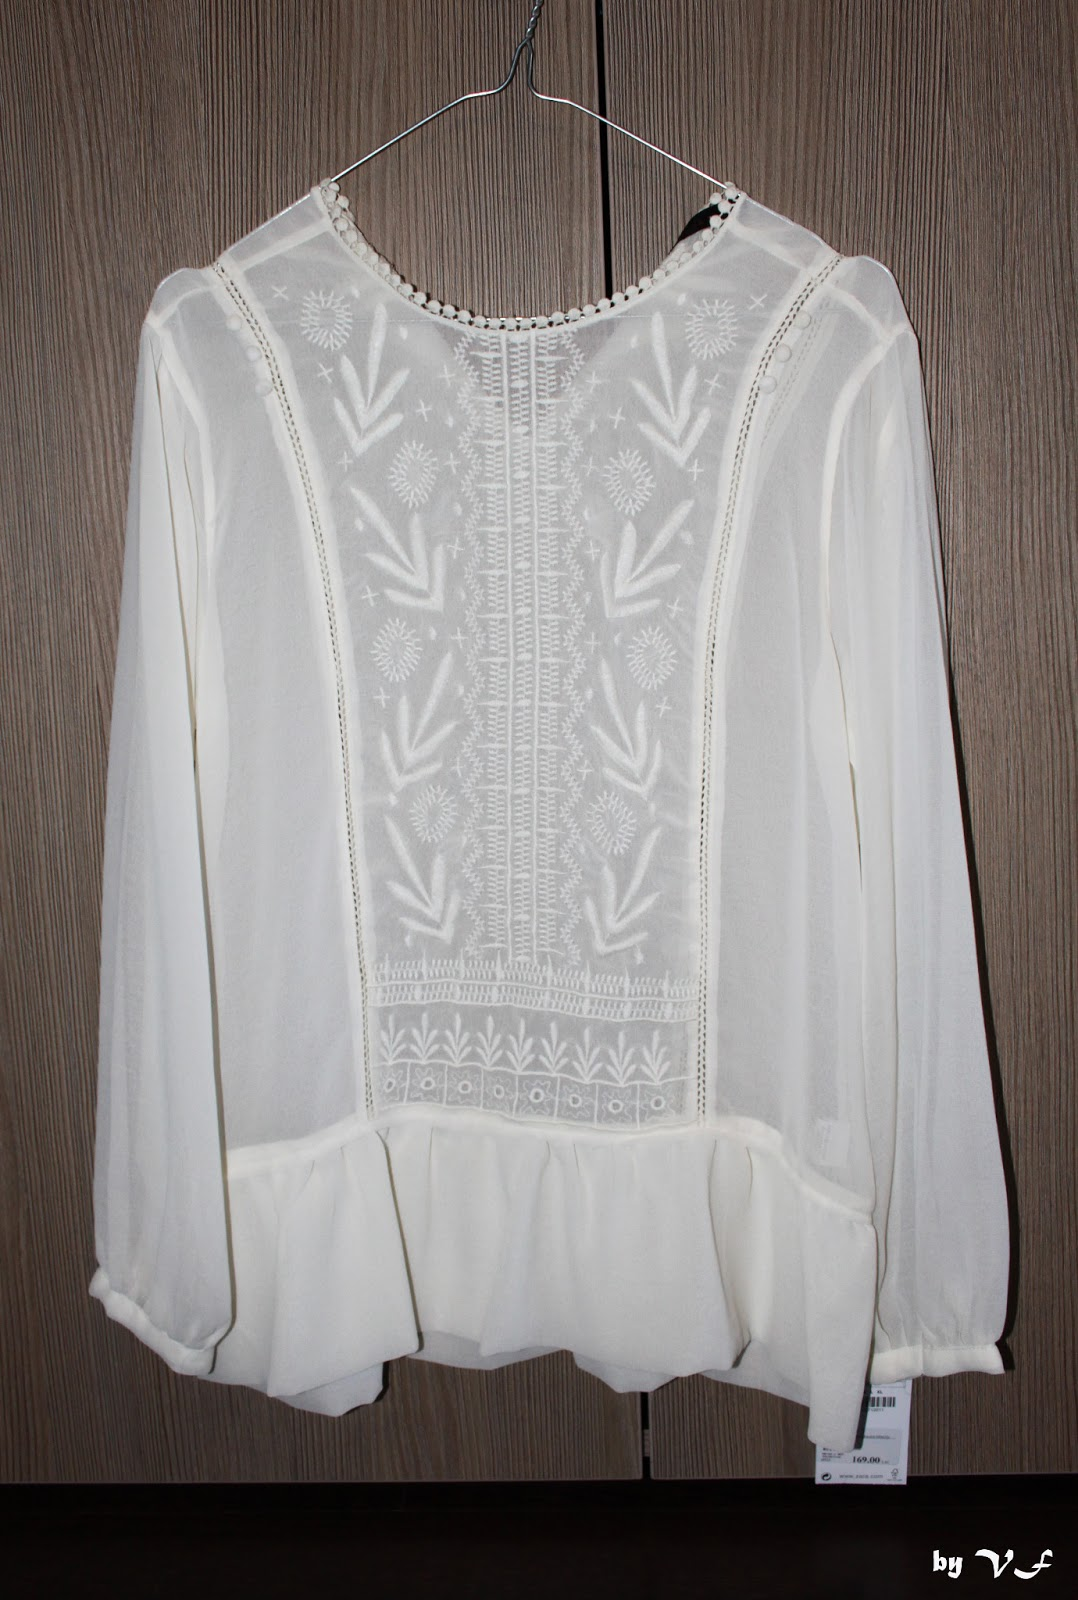 Zara Combined Embroidered Blouse 83